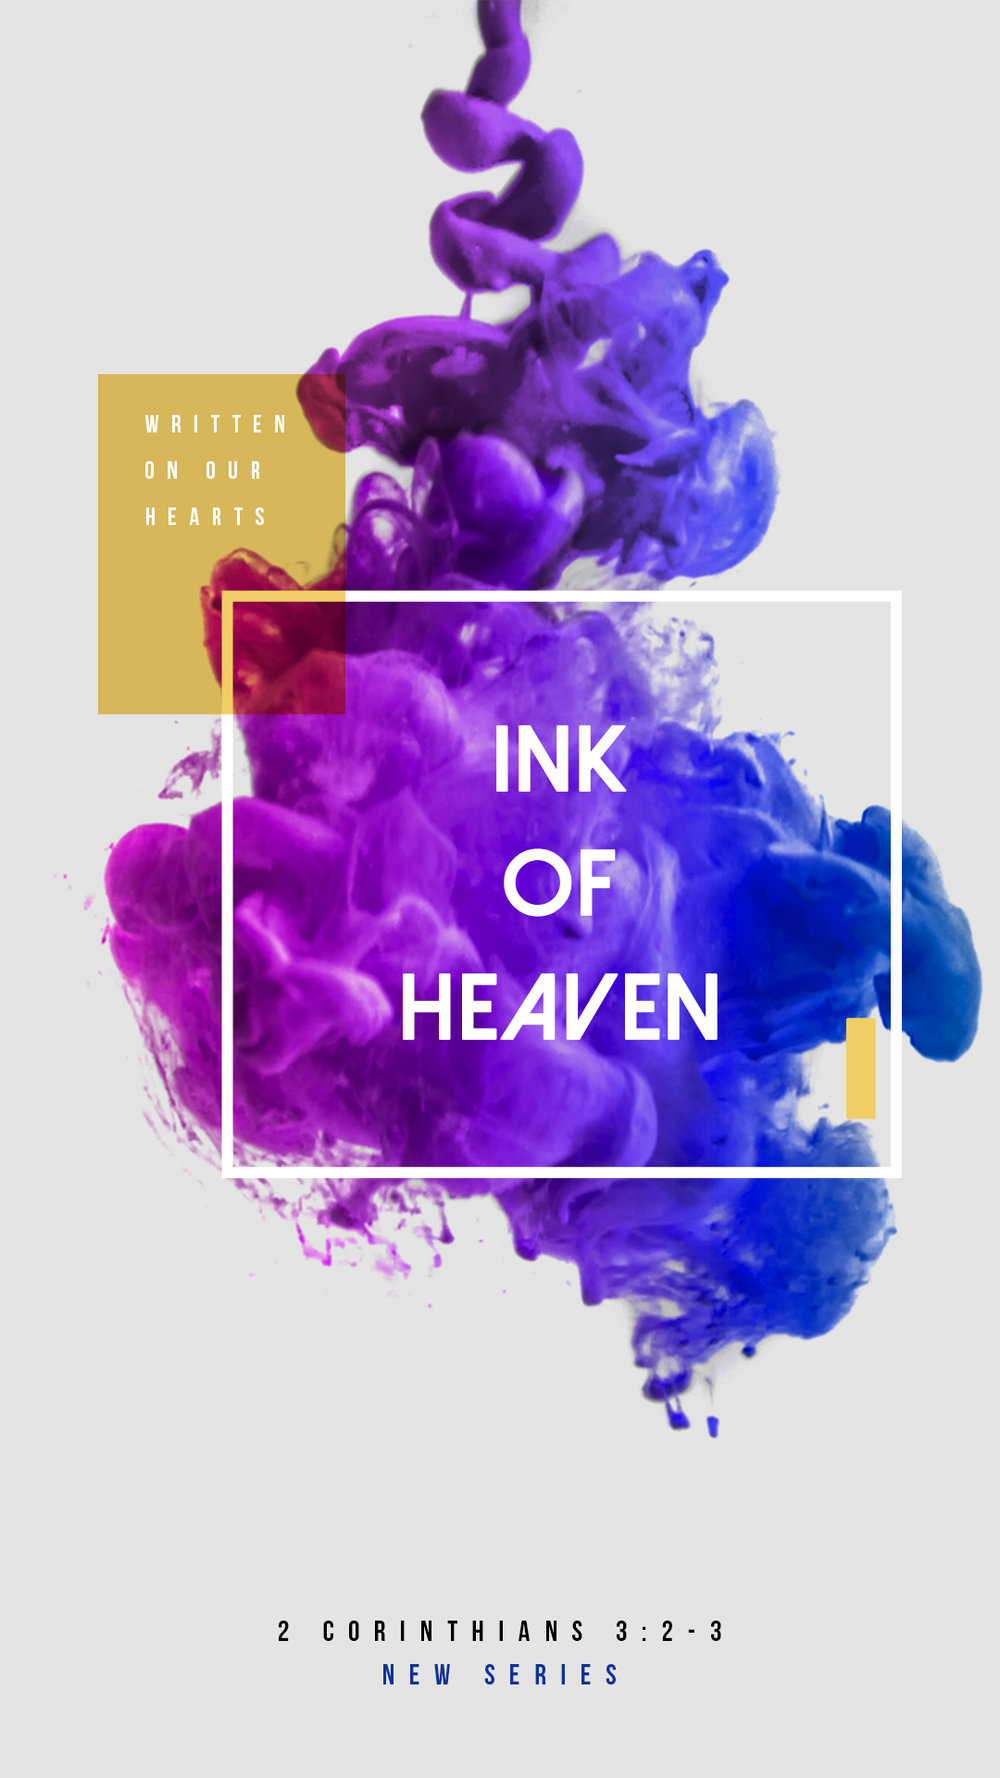 Ink-of-heaven.jpg